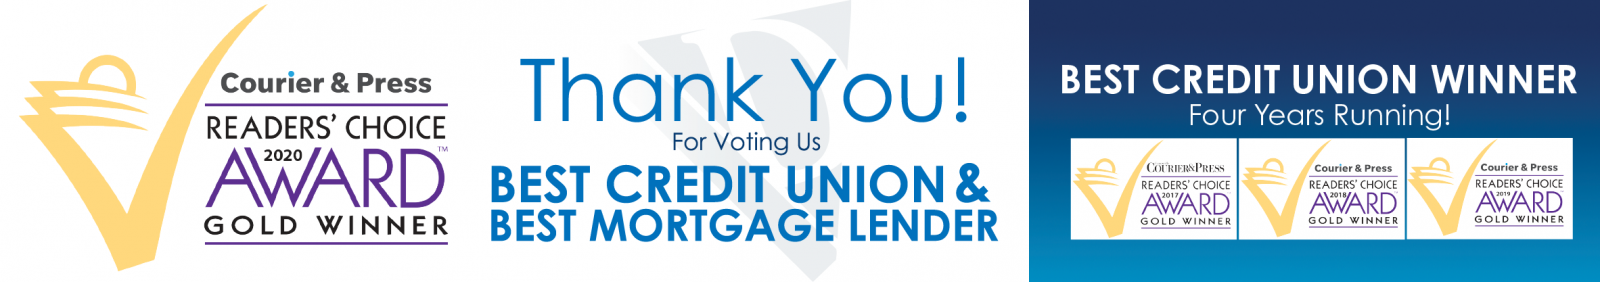 Thank You Voting Us Best Credit Union for the fourth year in a row and Best Mortgage Lender!